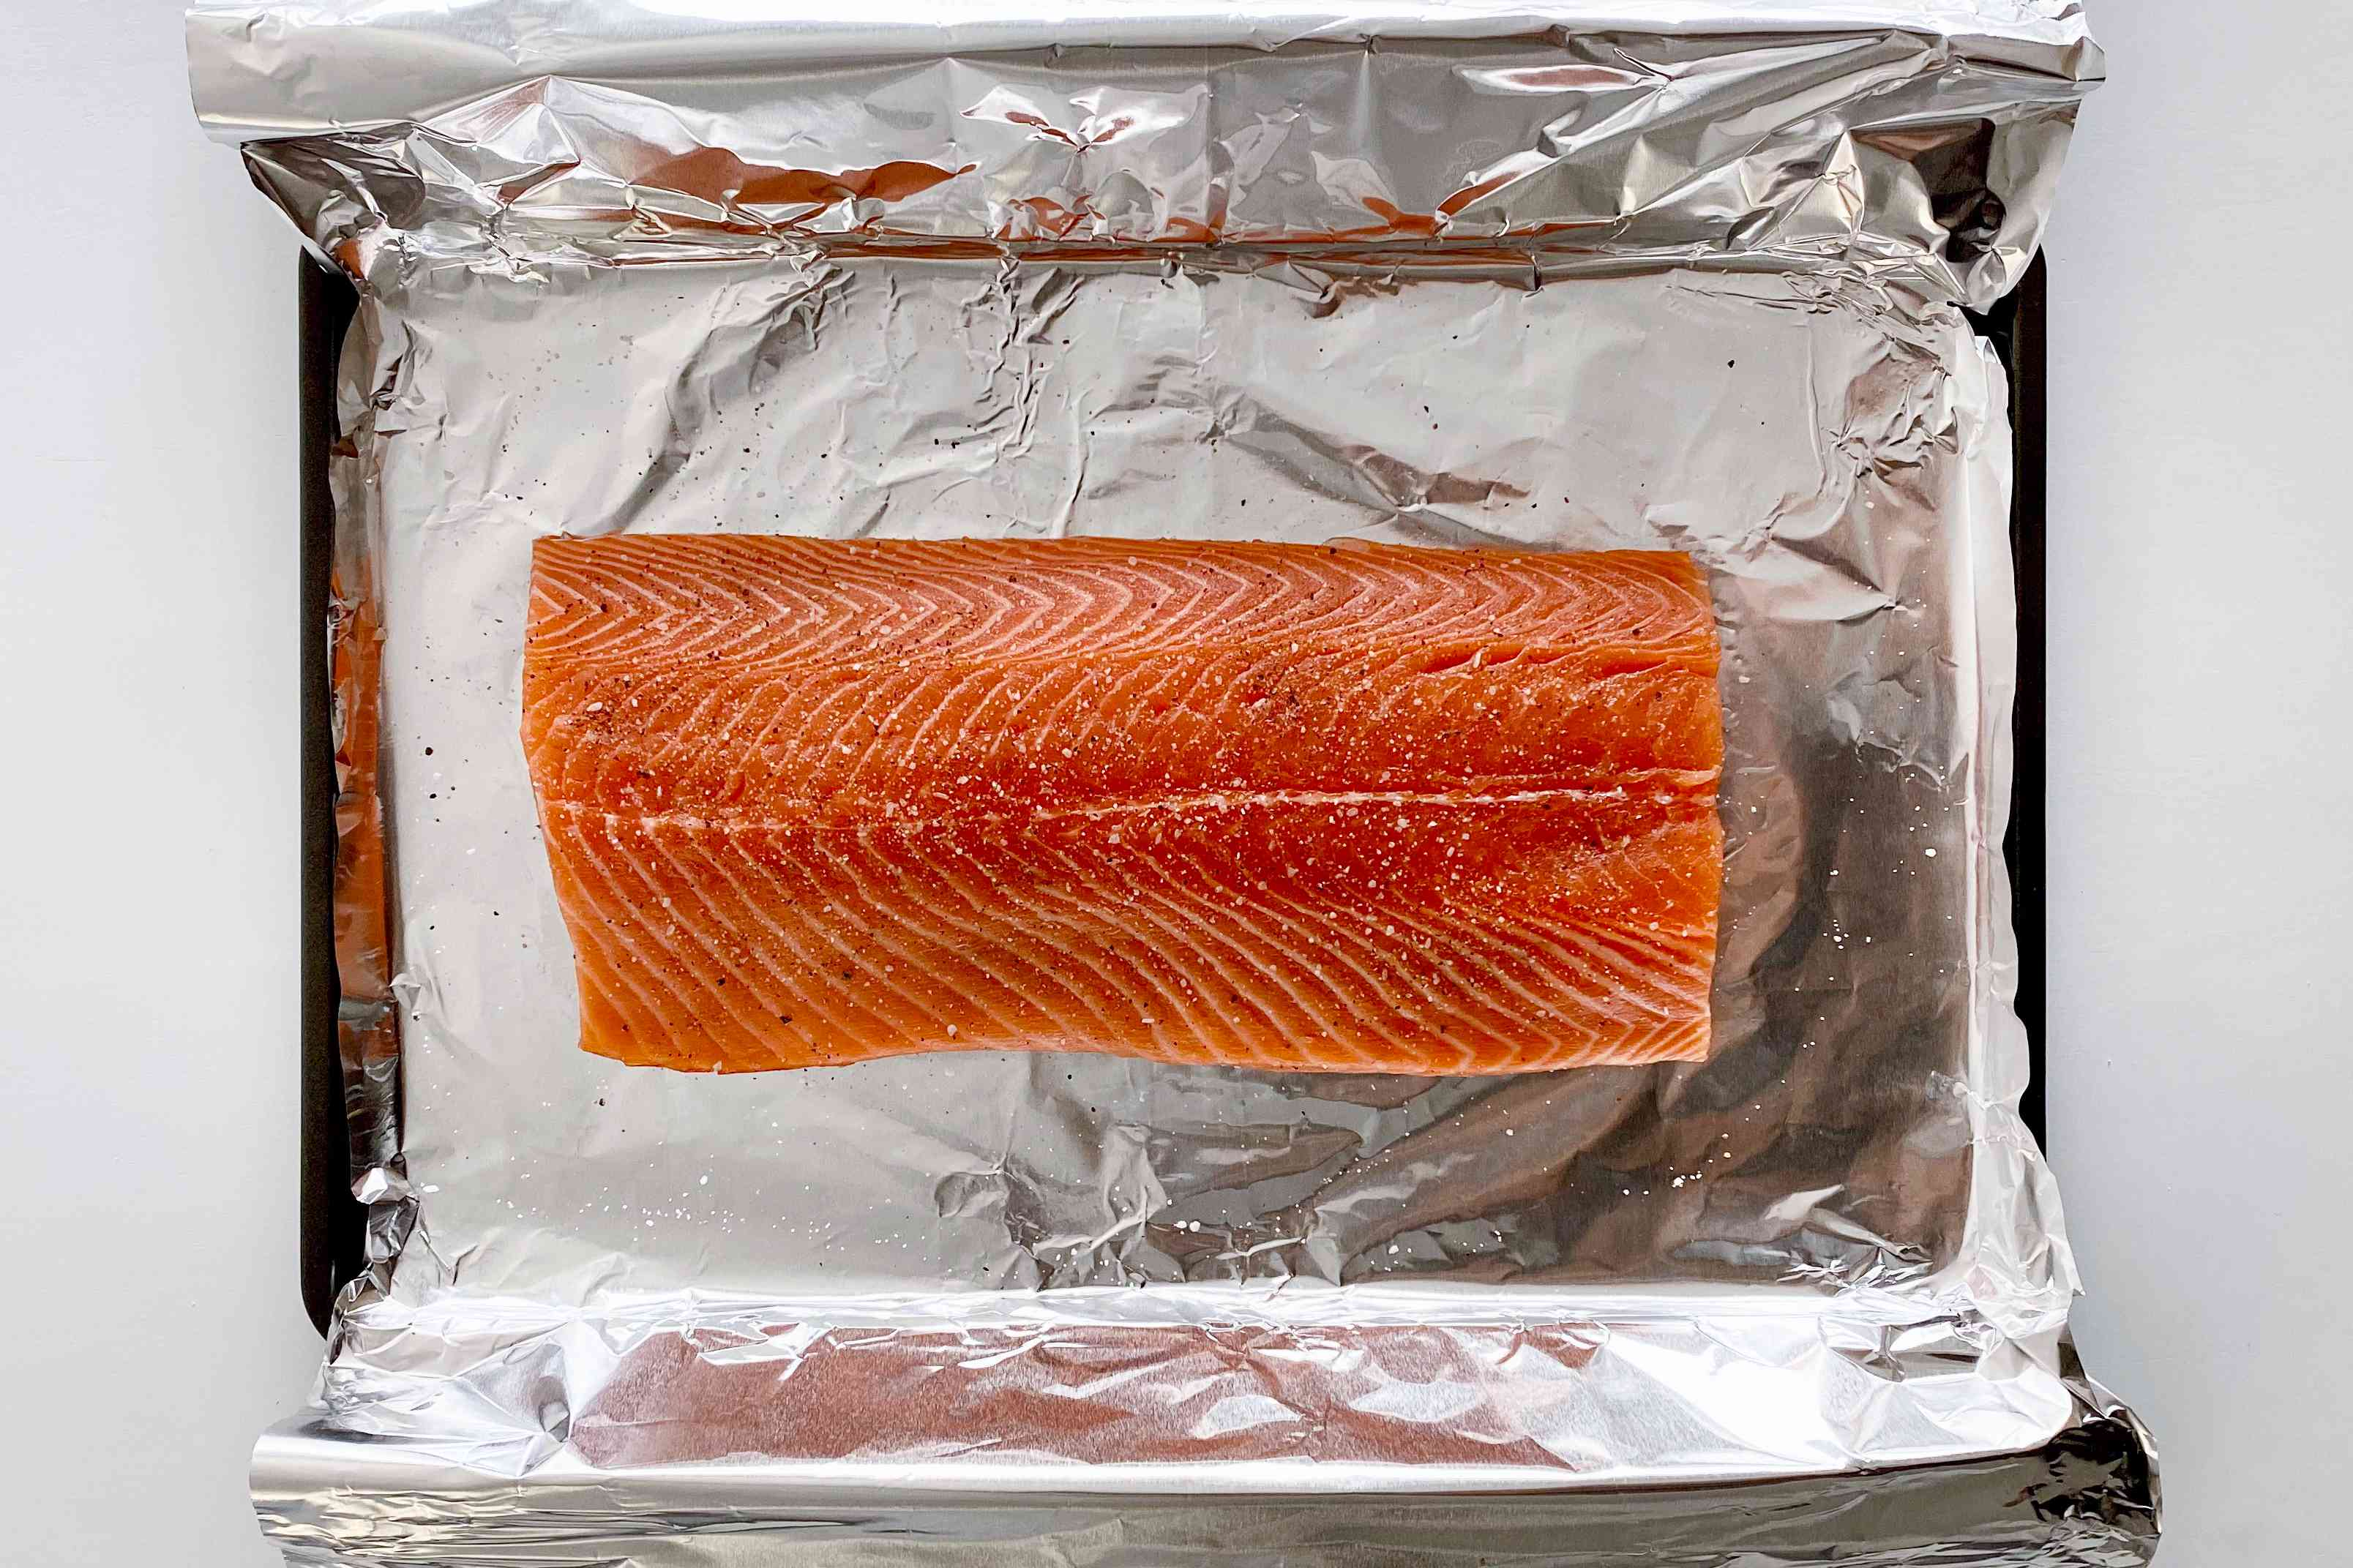 Unbaked salmon on a foil lined baking sheet to make Garlic Butter Baked Salmon.